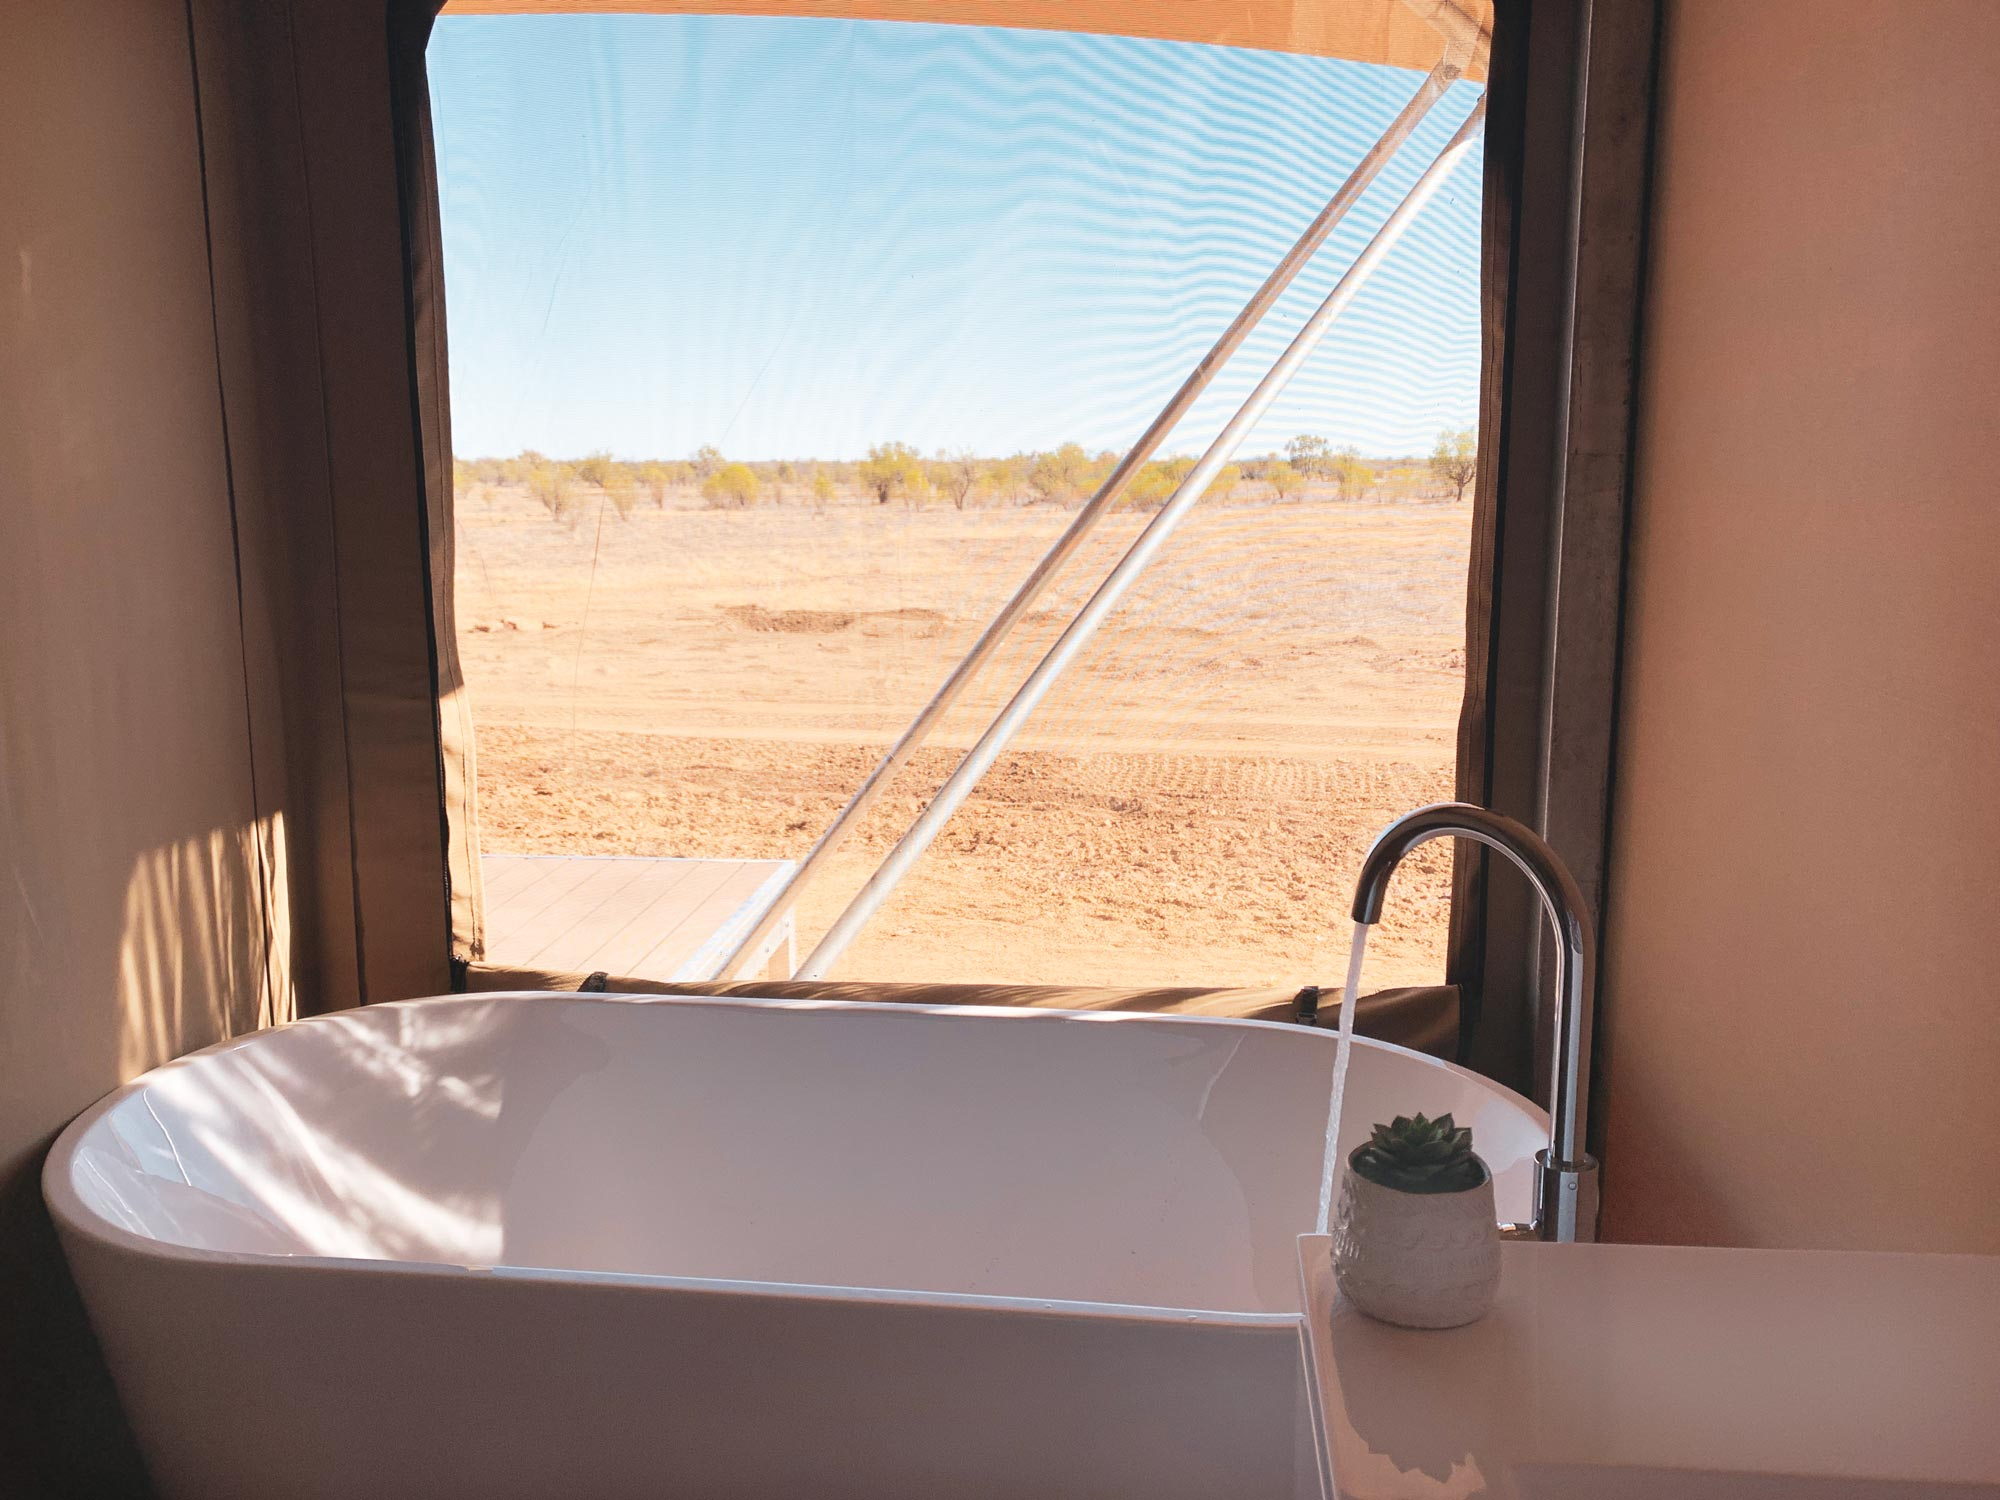 Bath tub in glamping tent